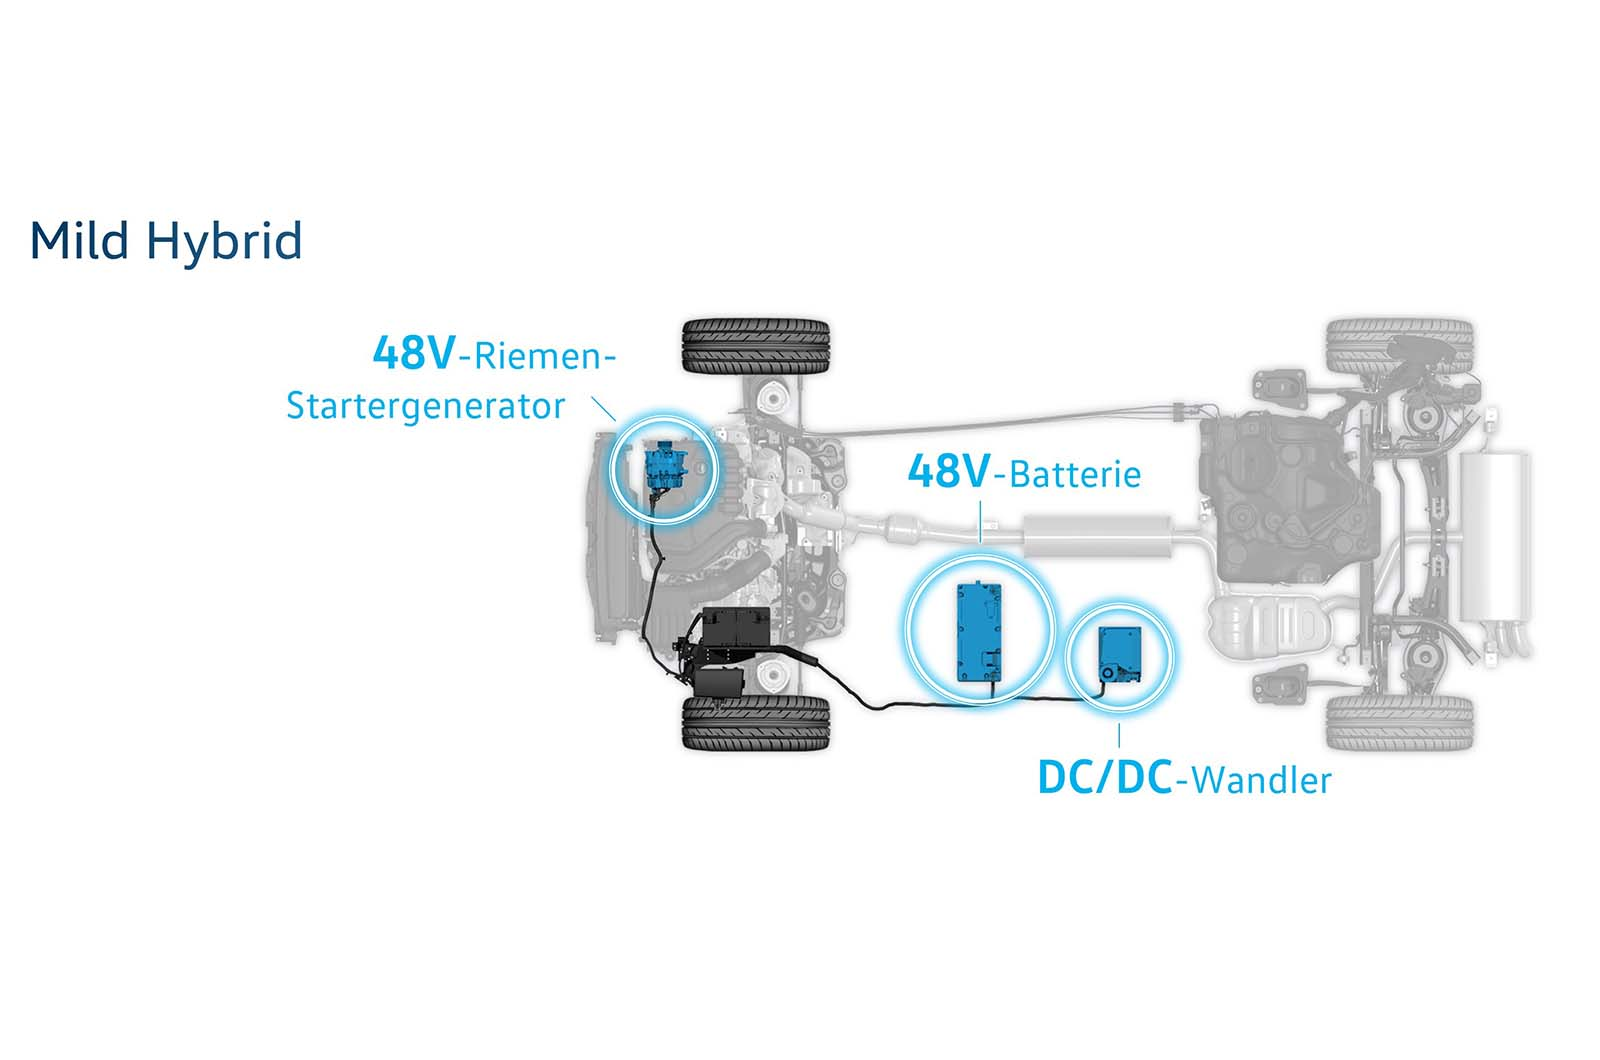 Volkswagen Announces Plans for Mild Hybrid Powertrains